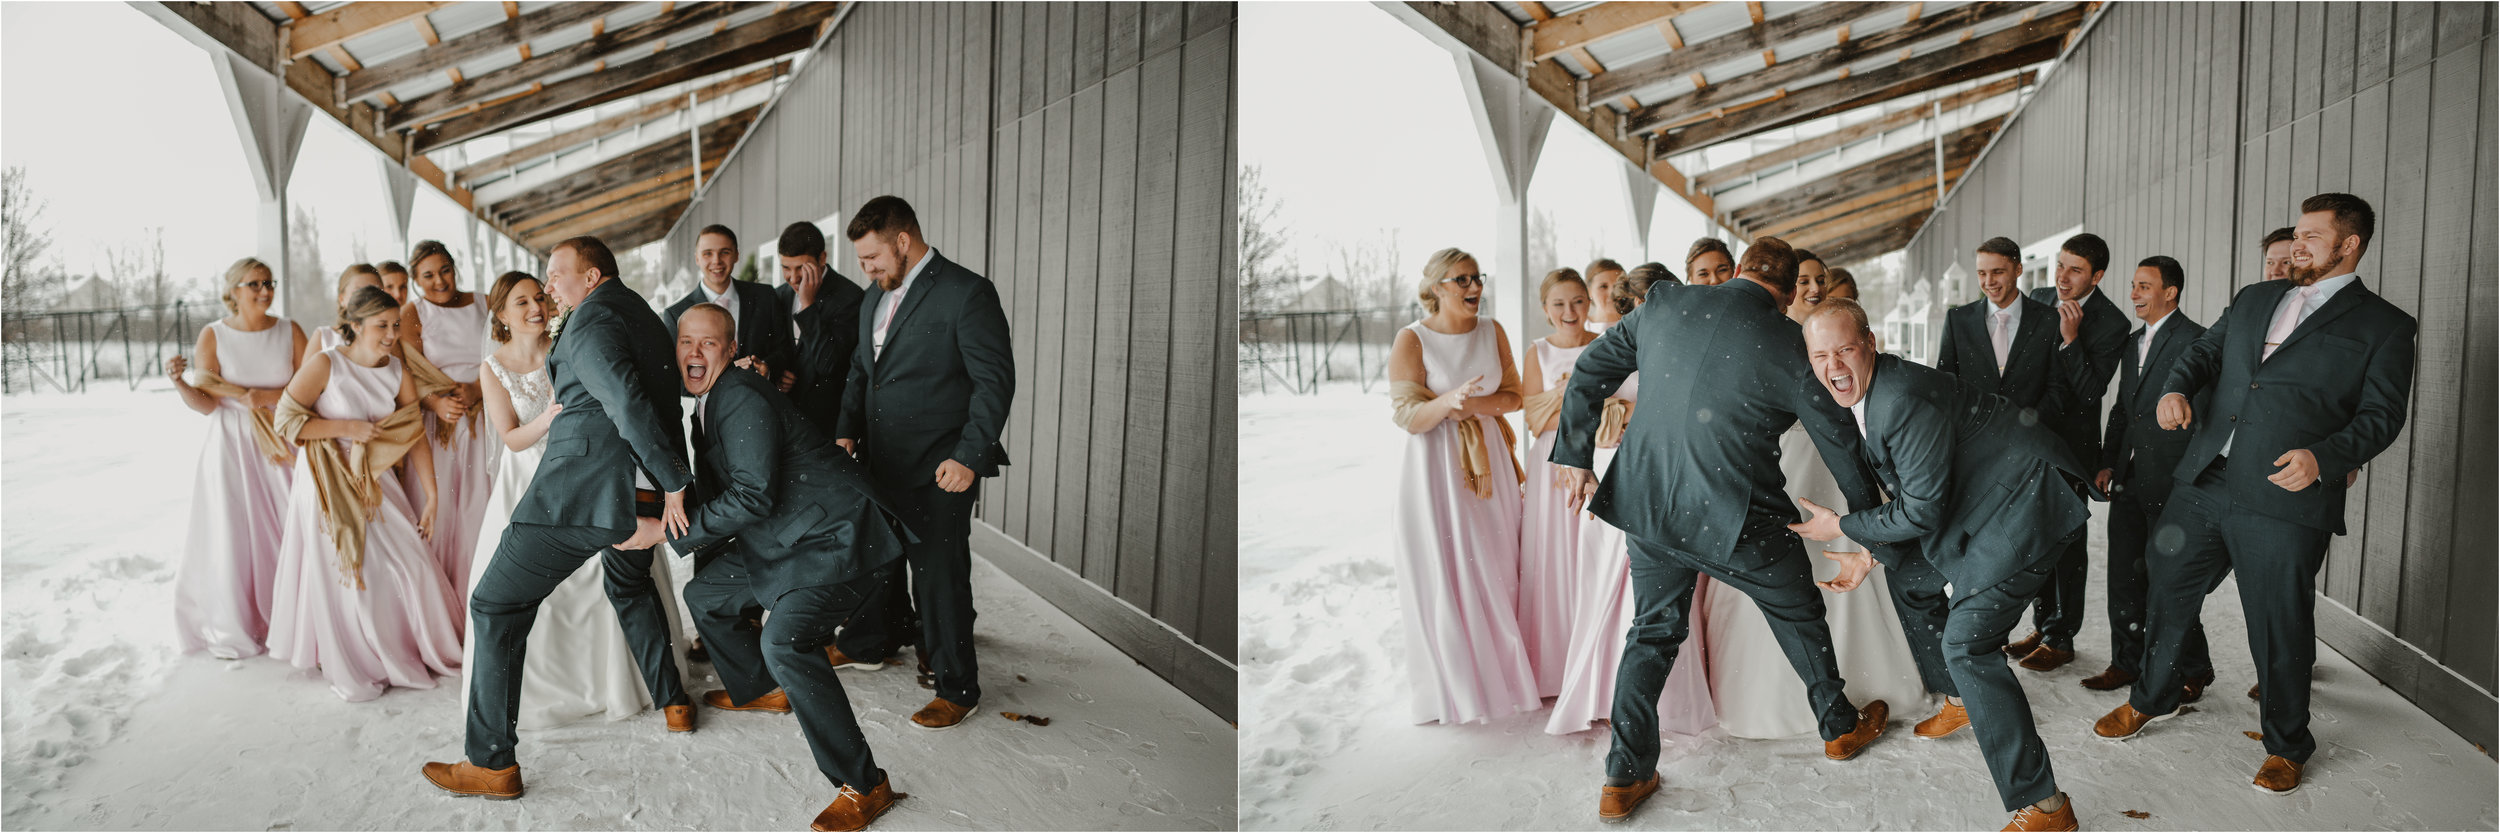 When you tell the party to attack the bride + groom with love..